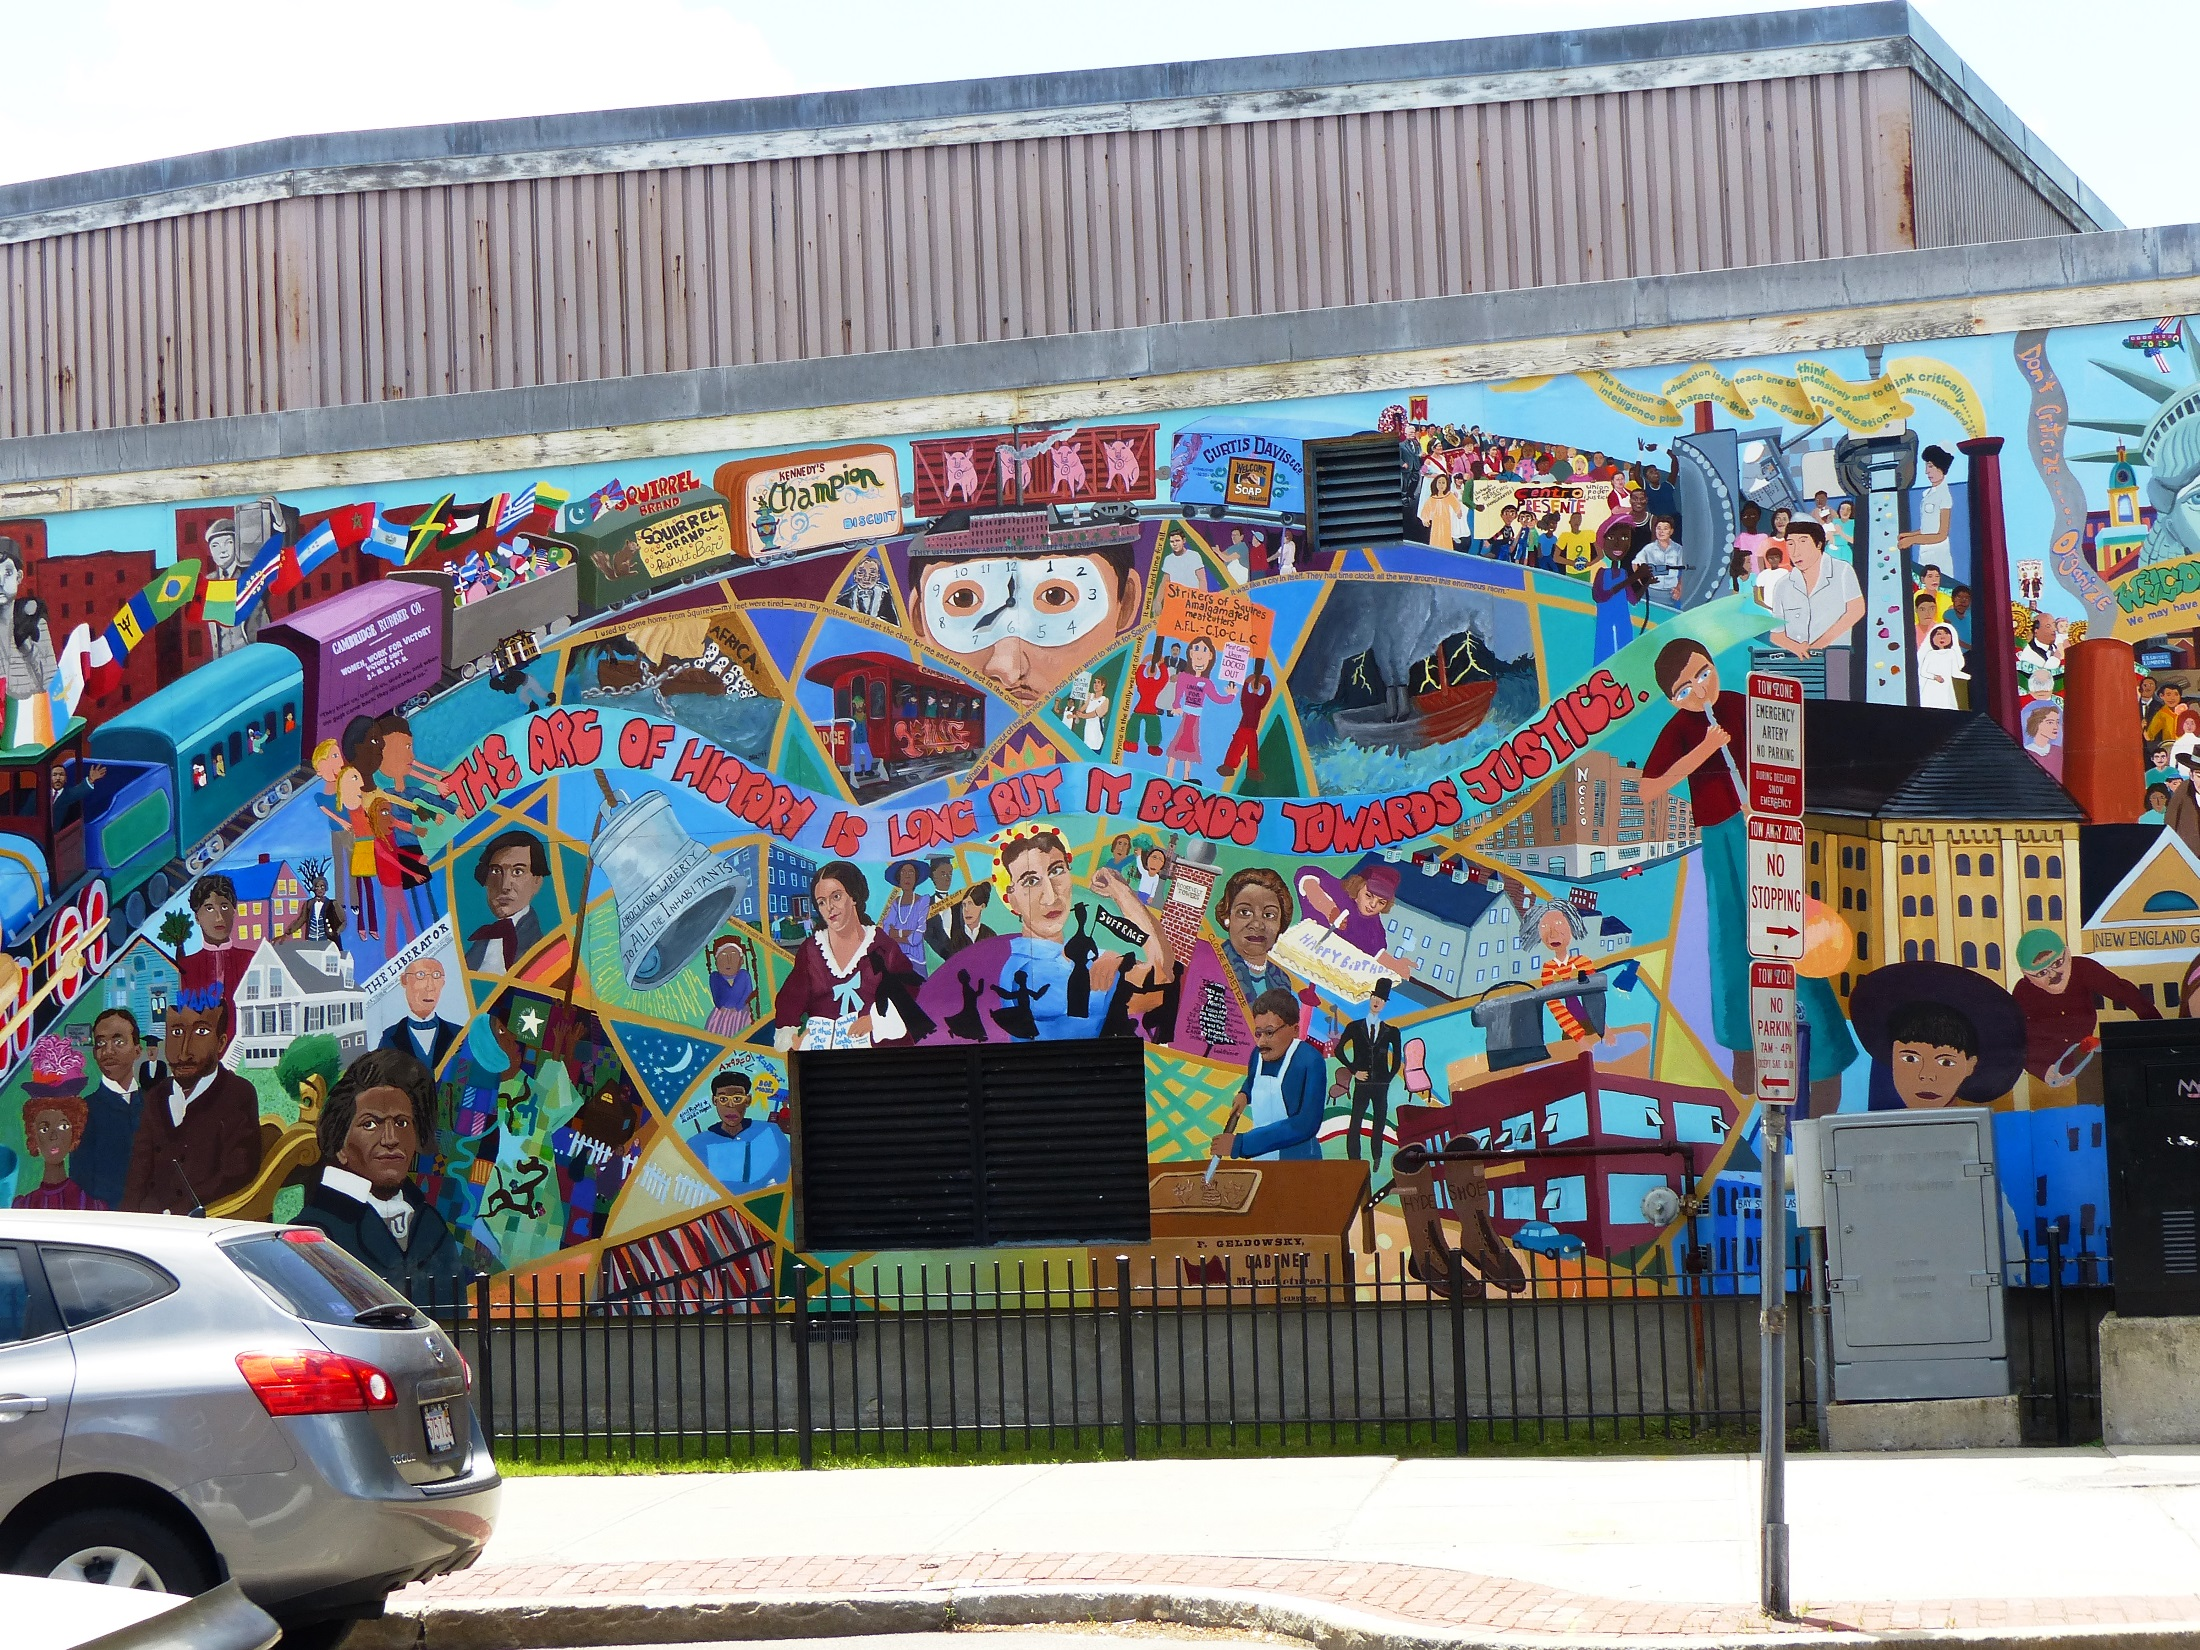 Cambridge Massachusetts mural for justice